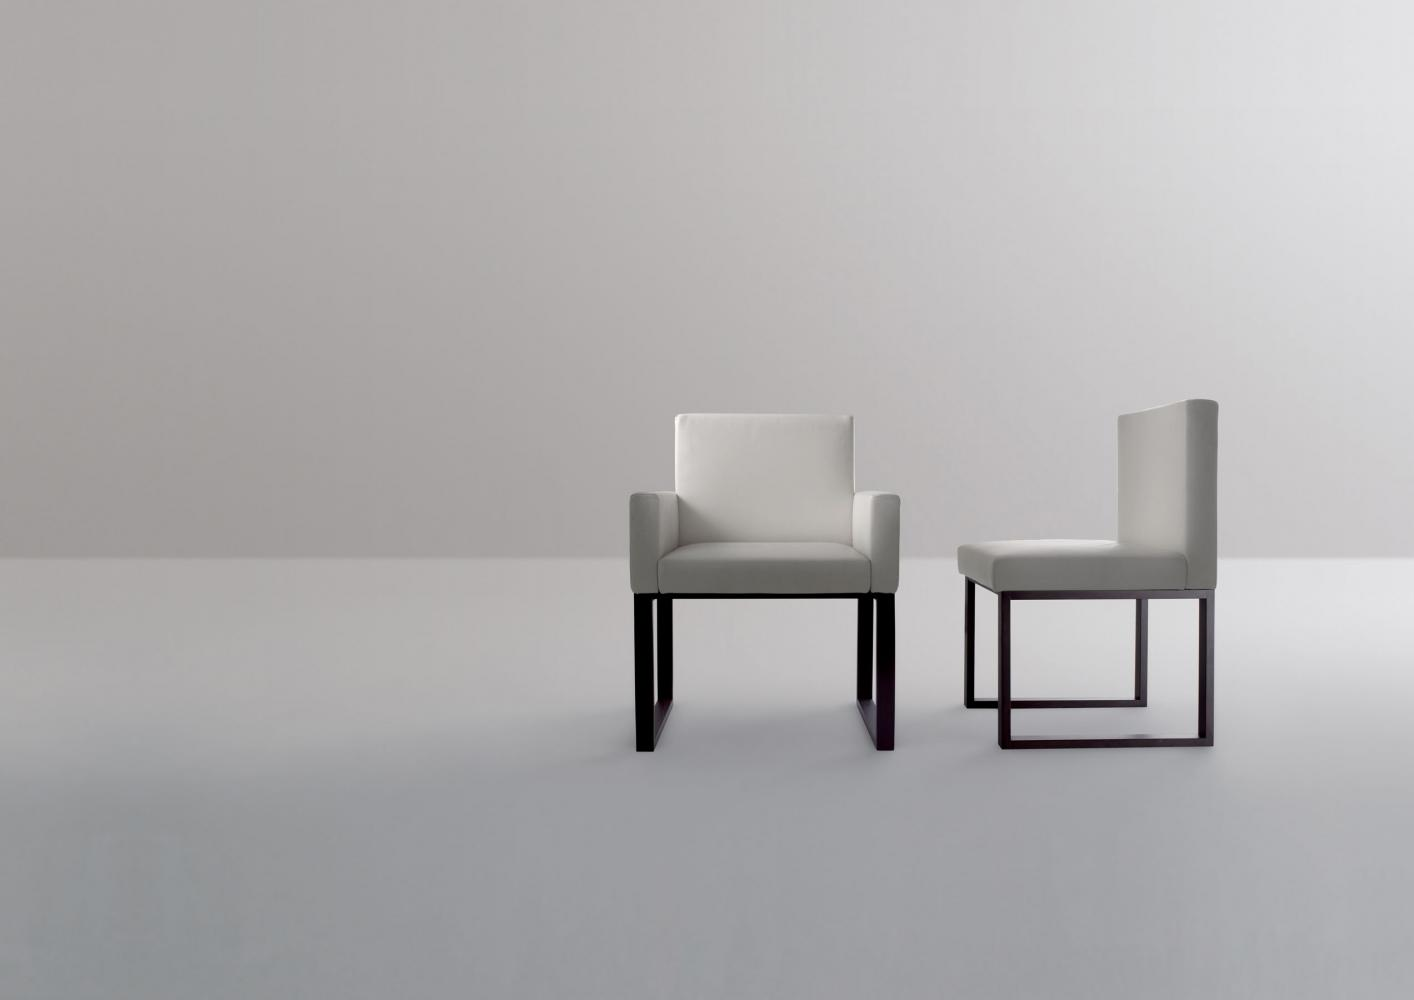 chair design bd ikea dining furniture chairs 03 laurameroni available with or without armrests can be used in both private and public spaces environments that share the same research for elegance